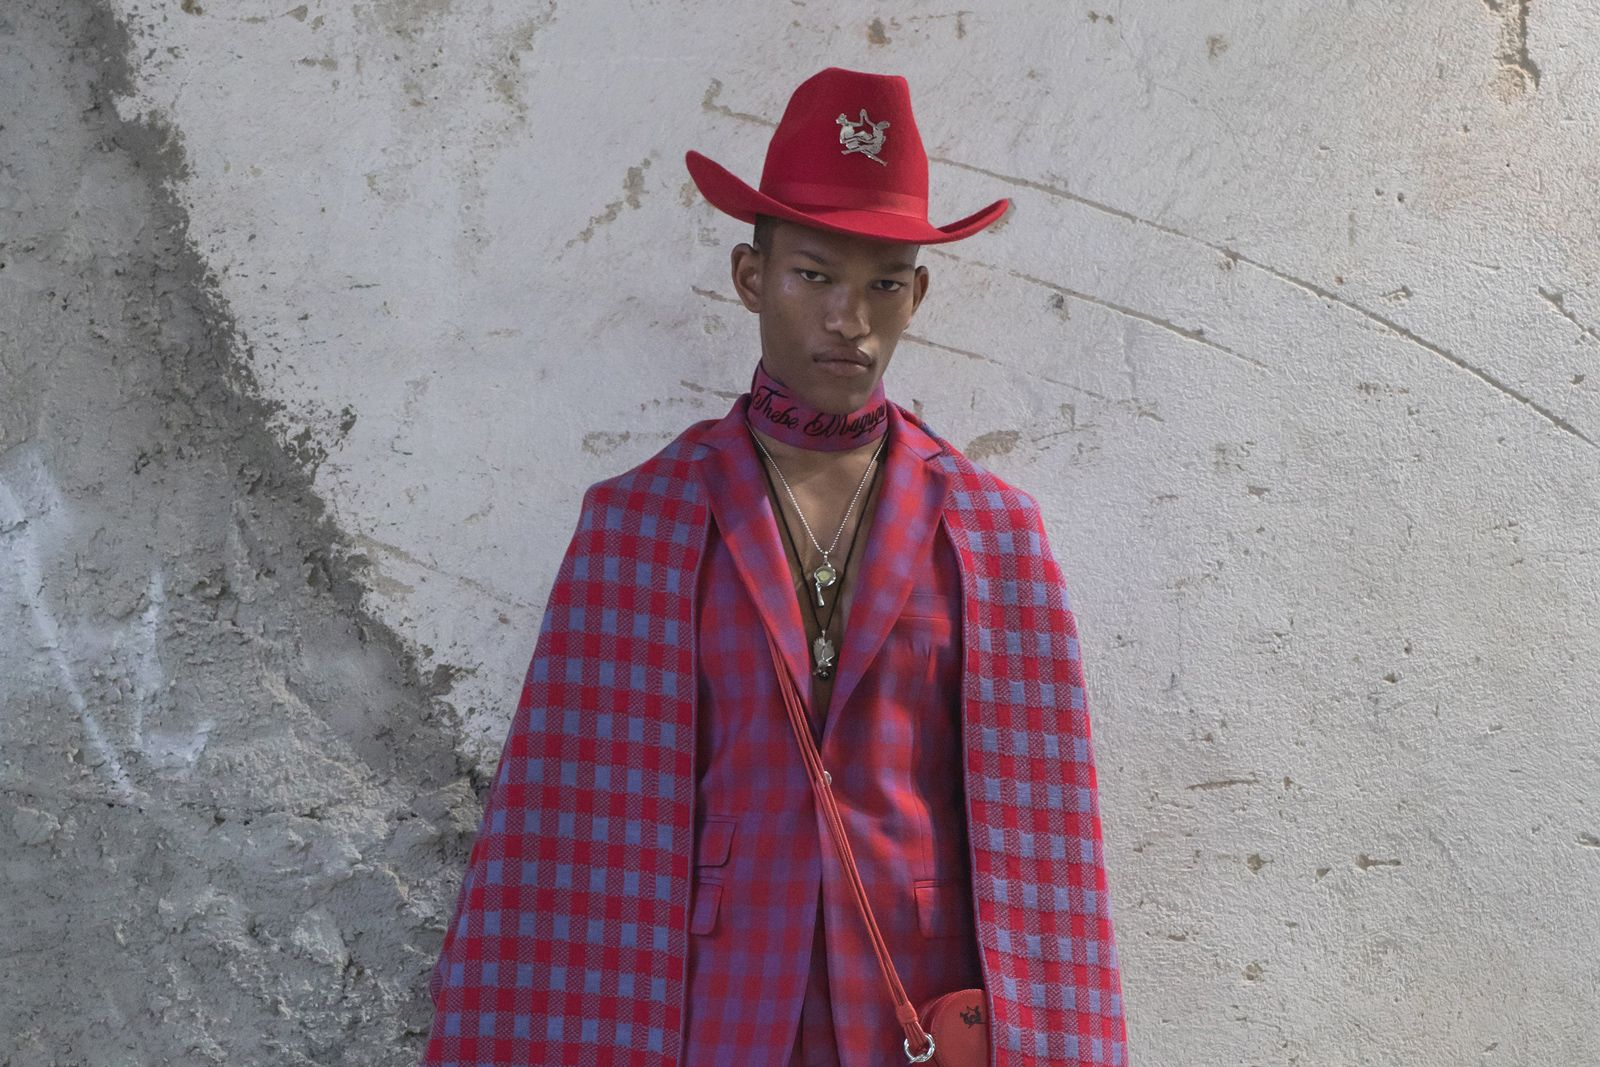 thebe-magugus-menswear-debut-at-pitti-is-everything-we-hoped-it-would-be-main